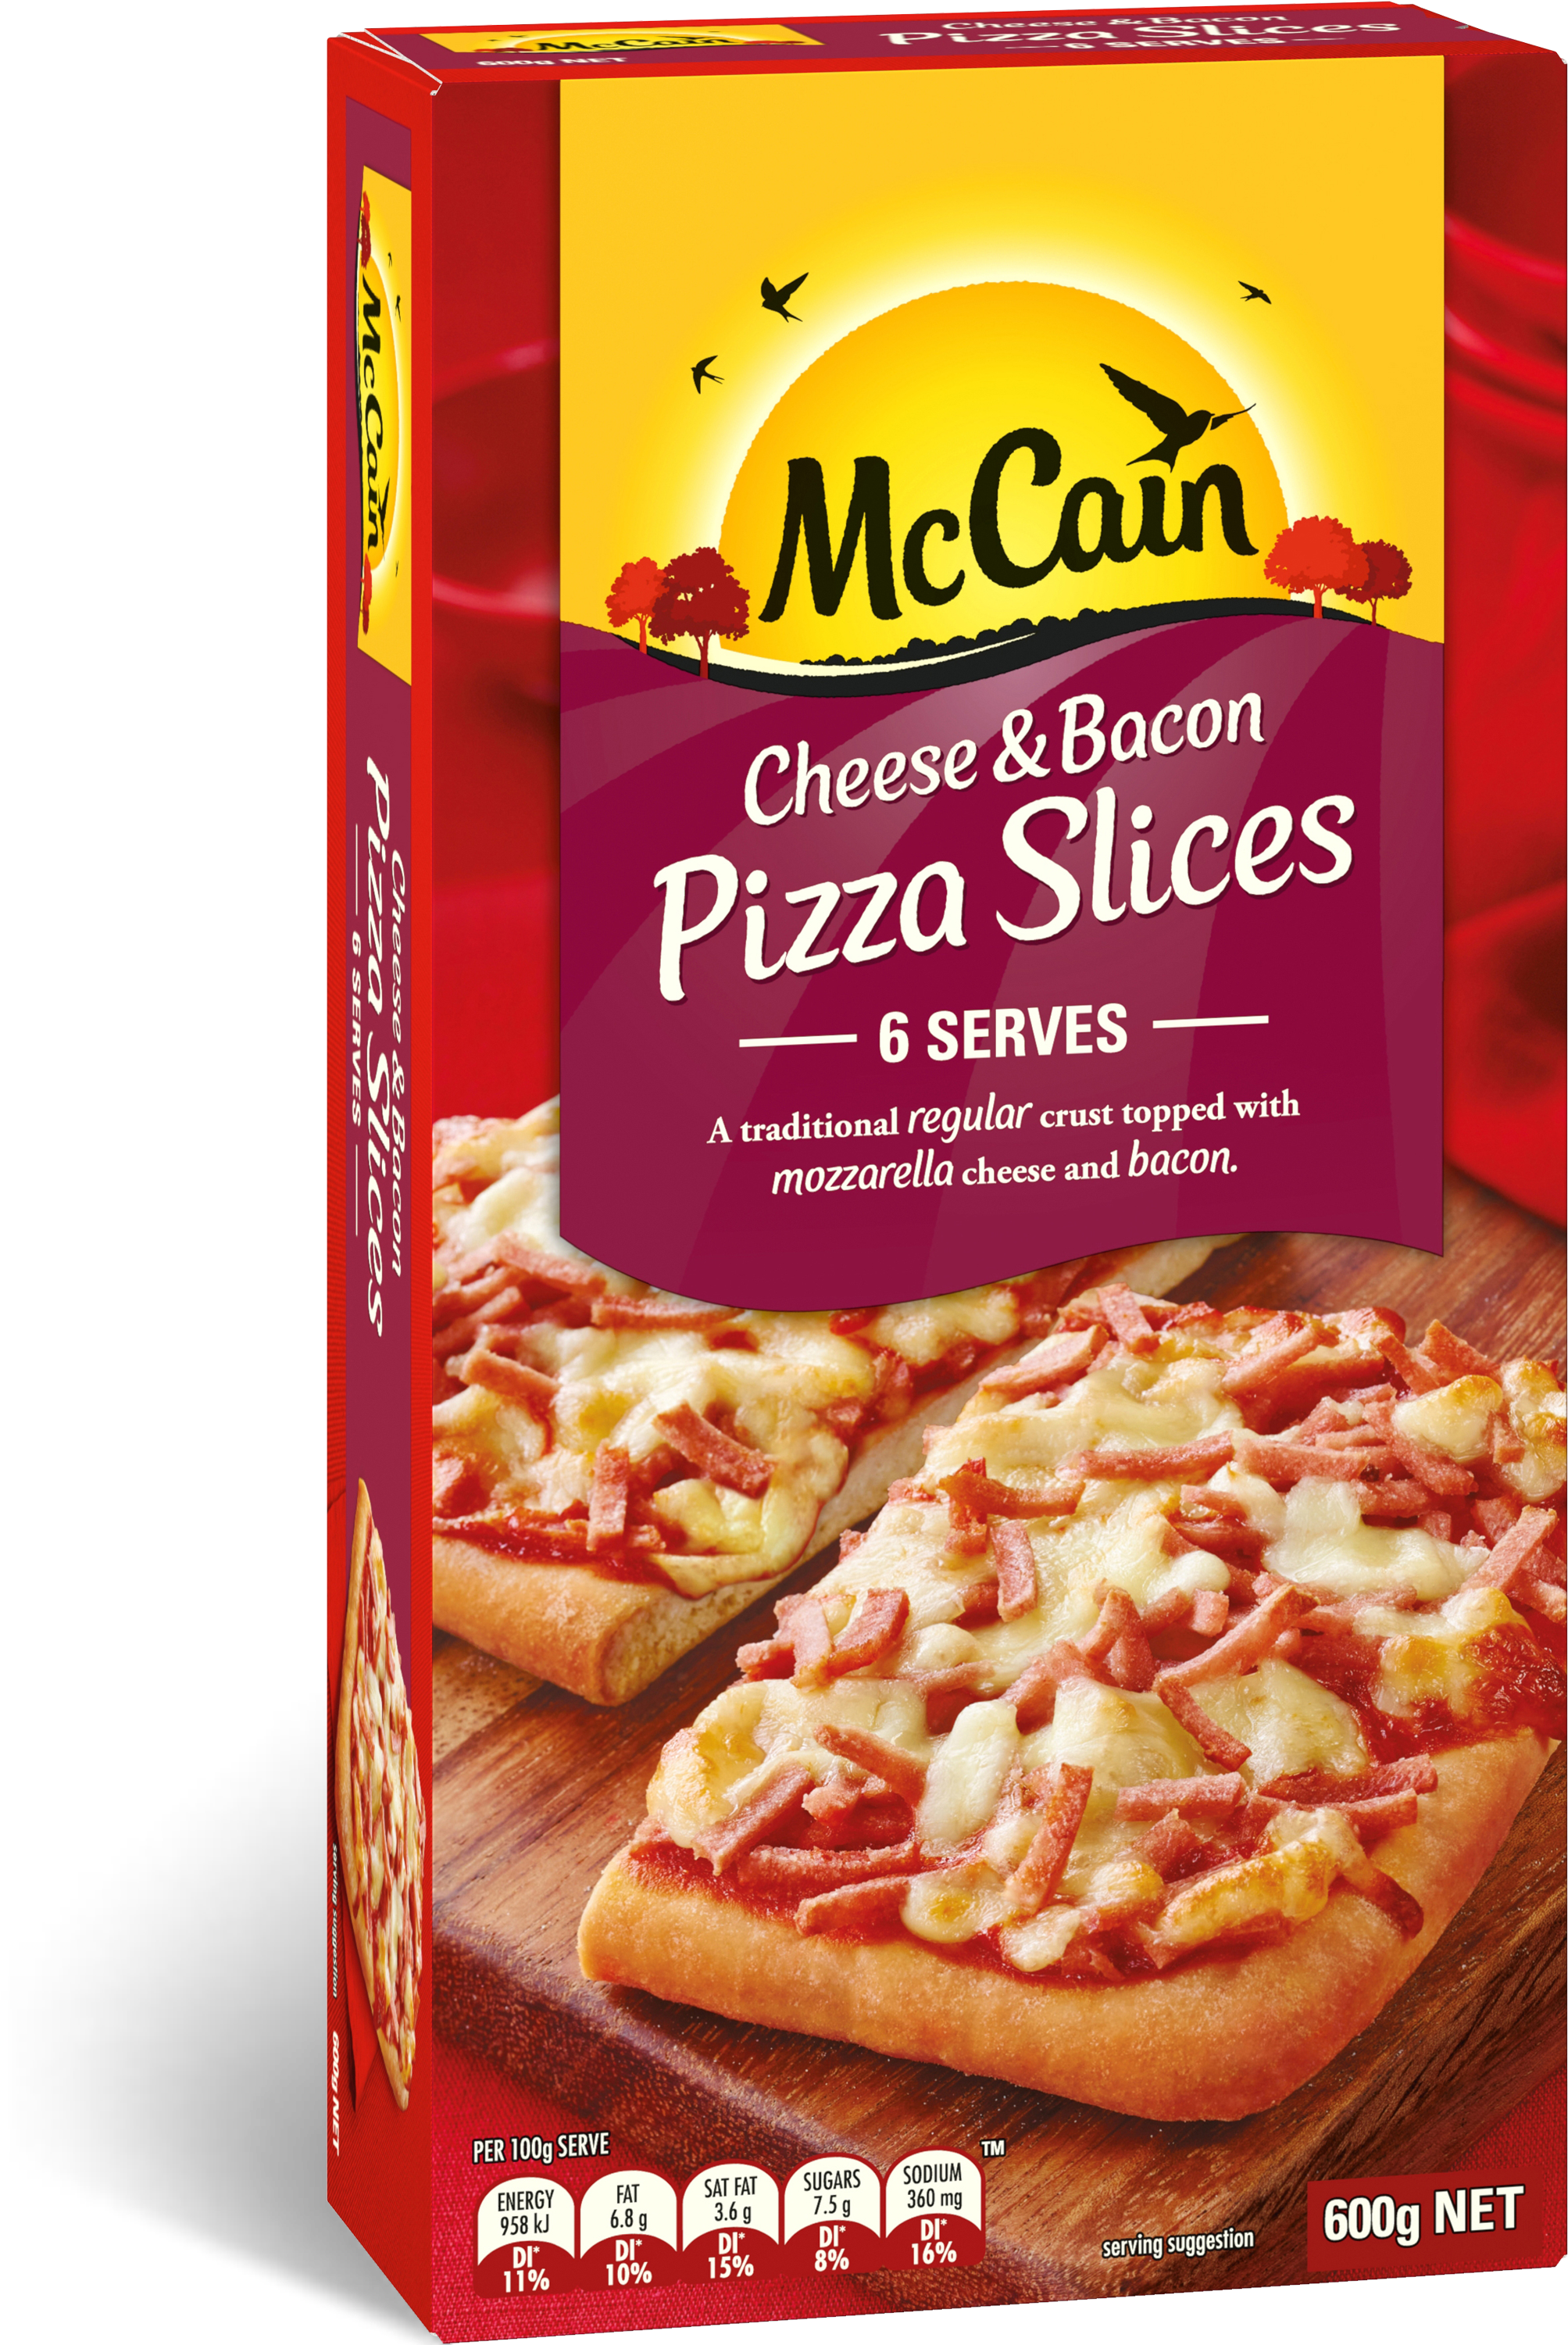 Transparent pizza slice clipart png - Cheese & Bacon Pizza Slices 600g - Mccain Ham And Pineapple Pizza